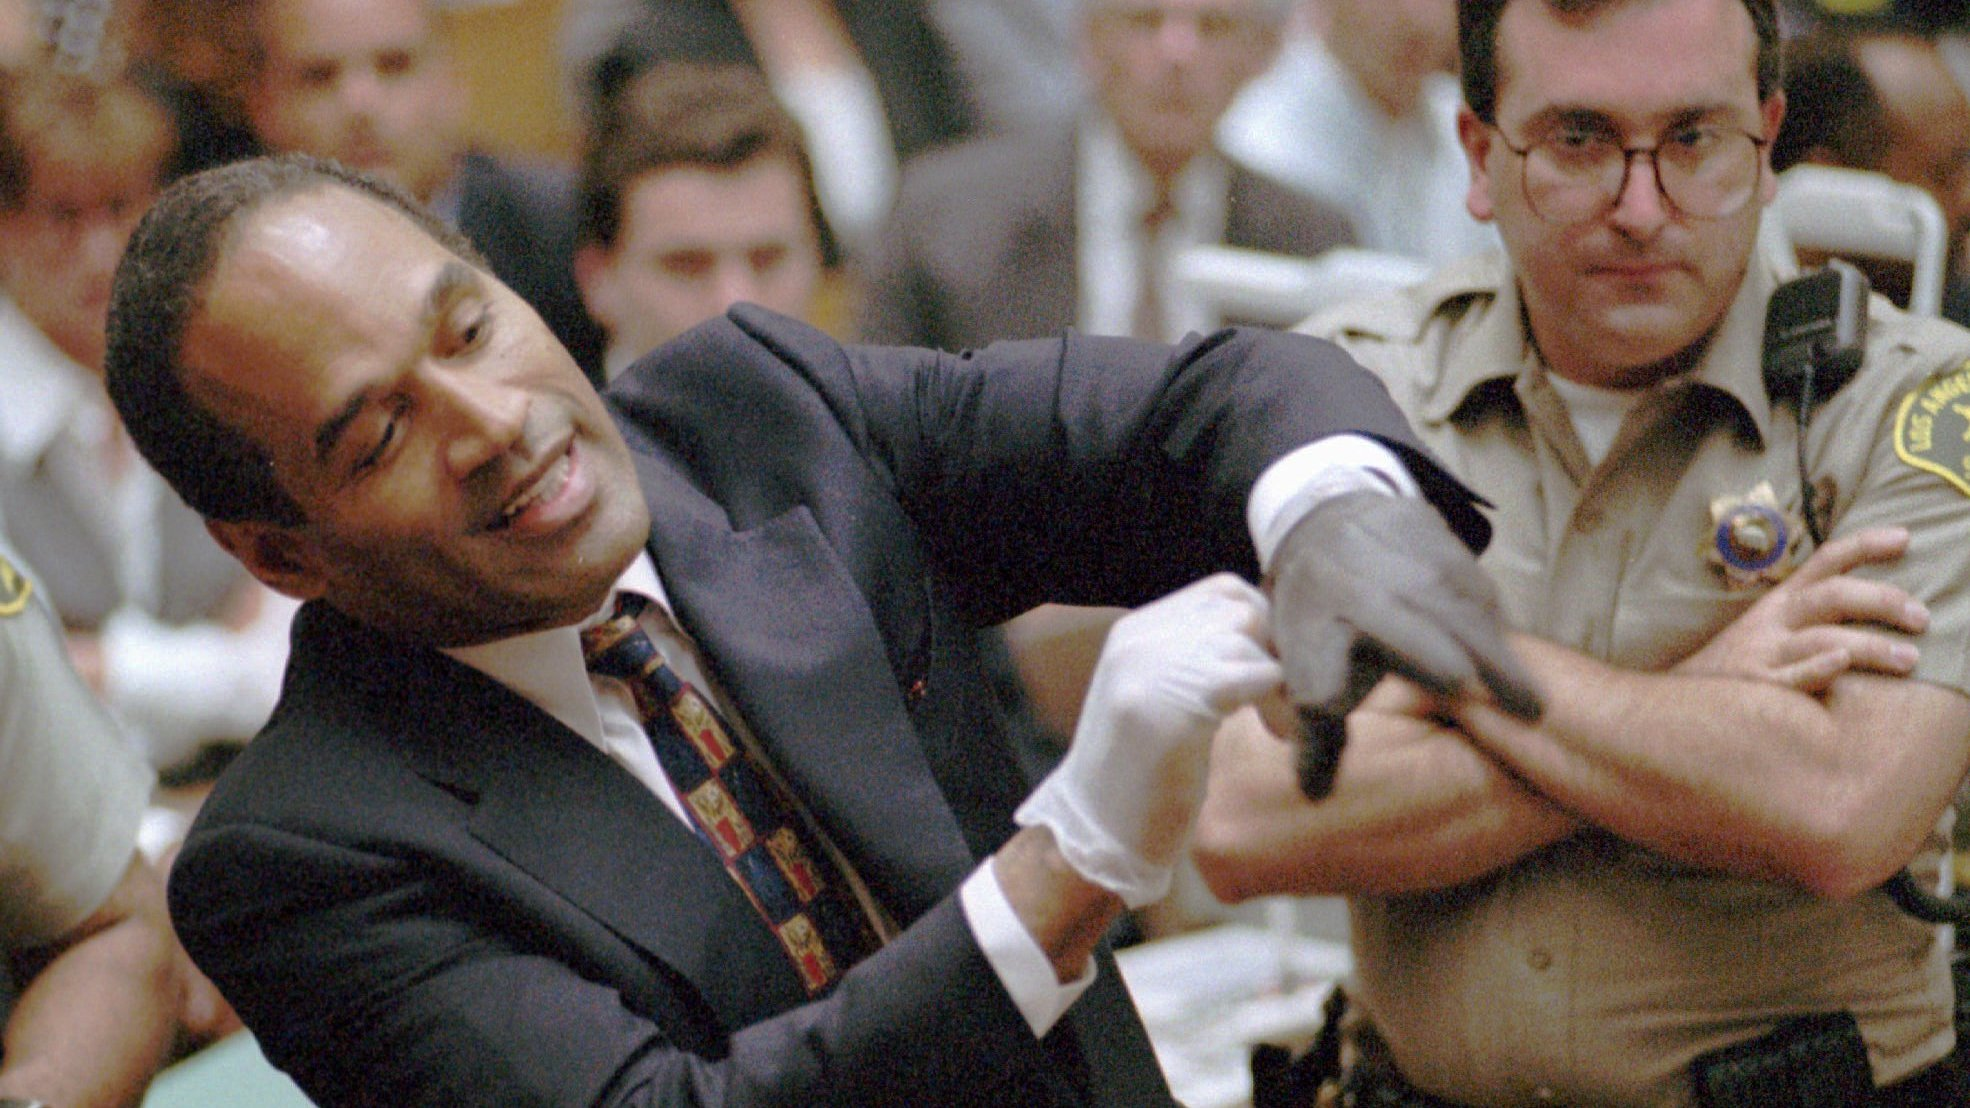 Murder defendant O.J. Simpson grimaces in July 1995 as he tries on one of the leather gloves prosecutors say he wore the night his ex-wife Nicole Brown Simpson and Ron Goldman were murdered. The trial transfixed the nation with a tale of a football hero turned accused murderer. (Sam Mircovich/AP)